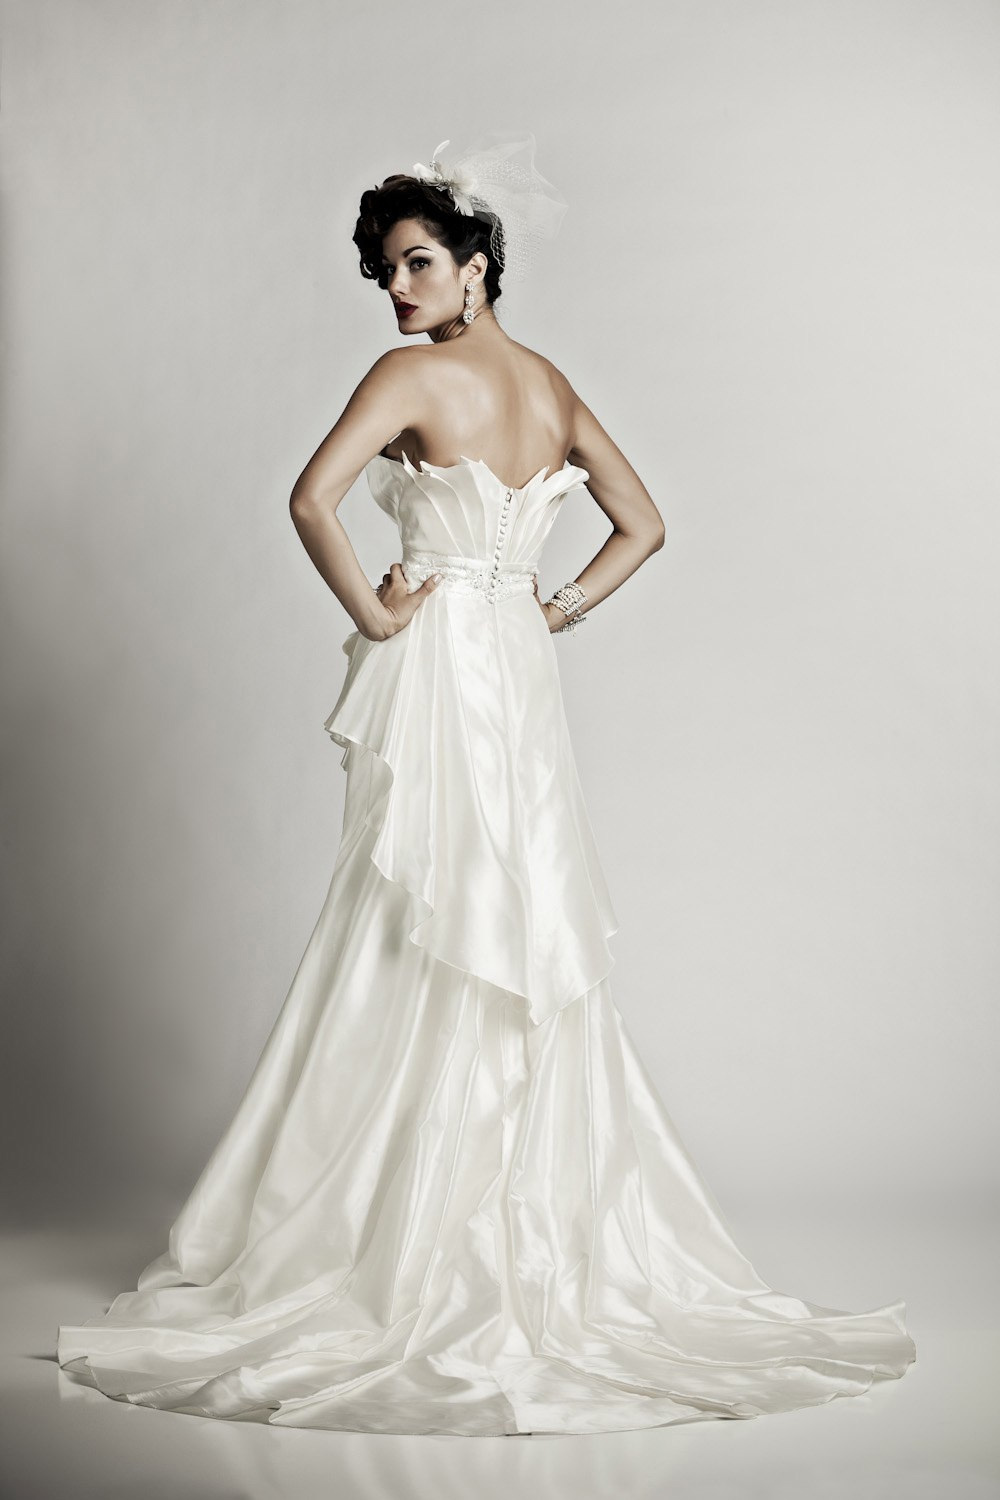 Ivory-delphine-wedding-dress-artistic-mermaid-cinched-waist-vintage-bridal-style-back.full